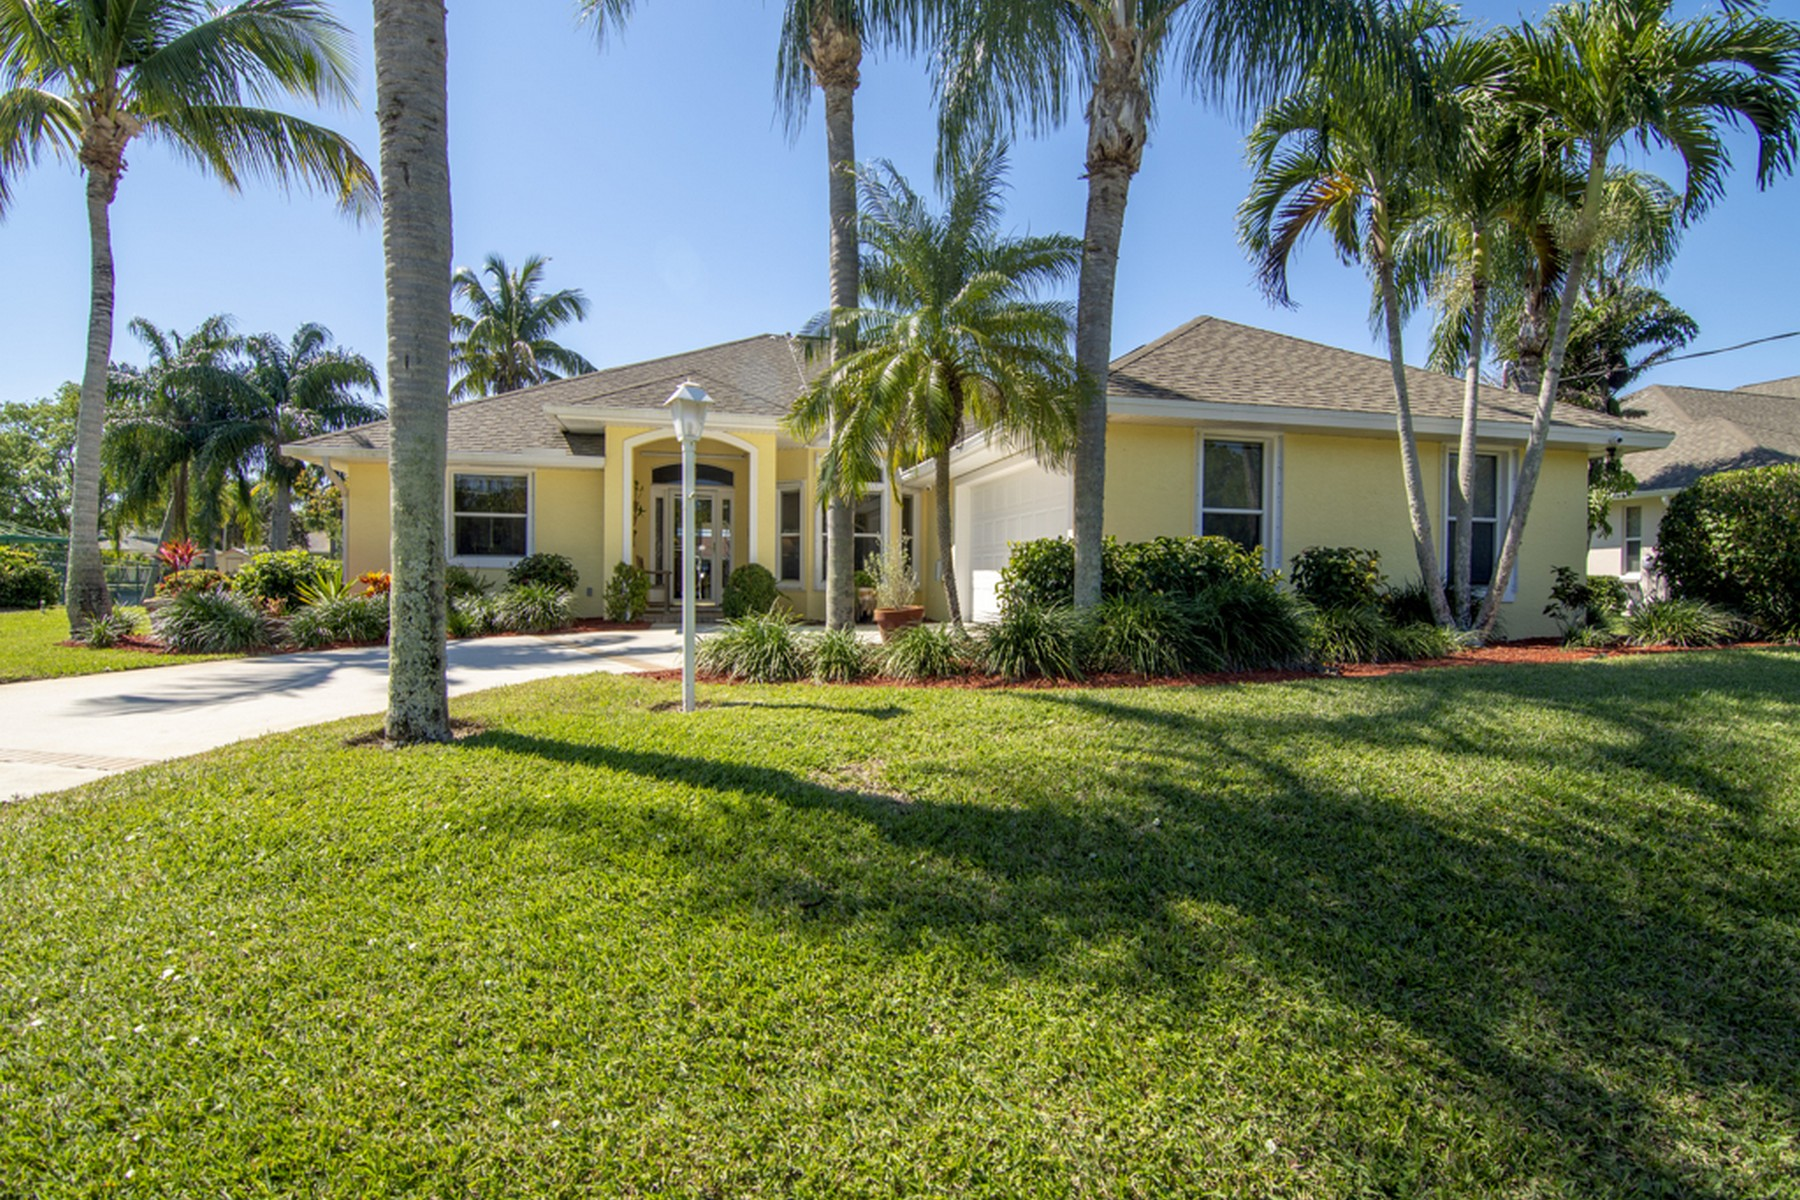 Property for Sale at Private Dock, Pool, No HOA 429 12th Street SE Vero Beach, Florida 32962 United States